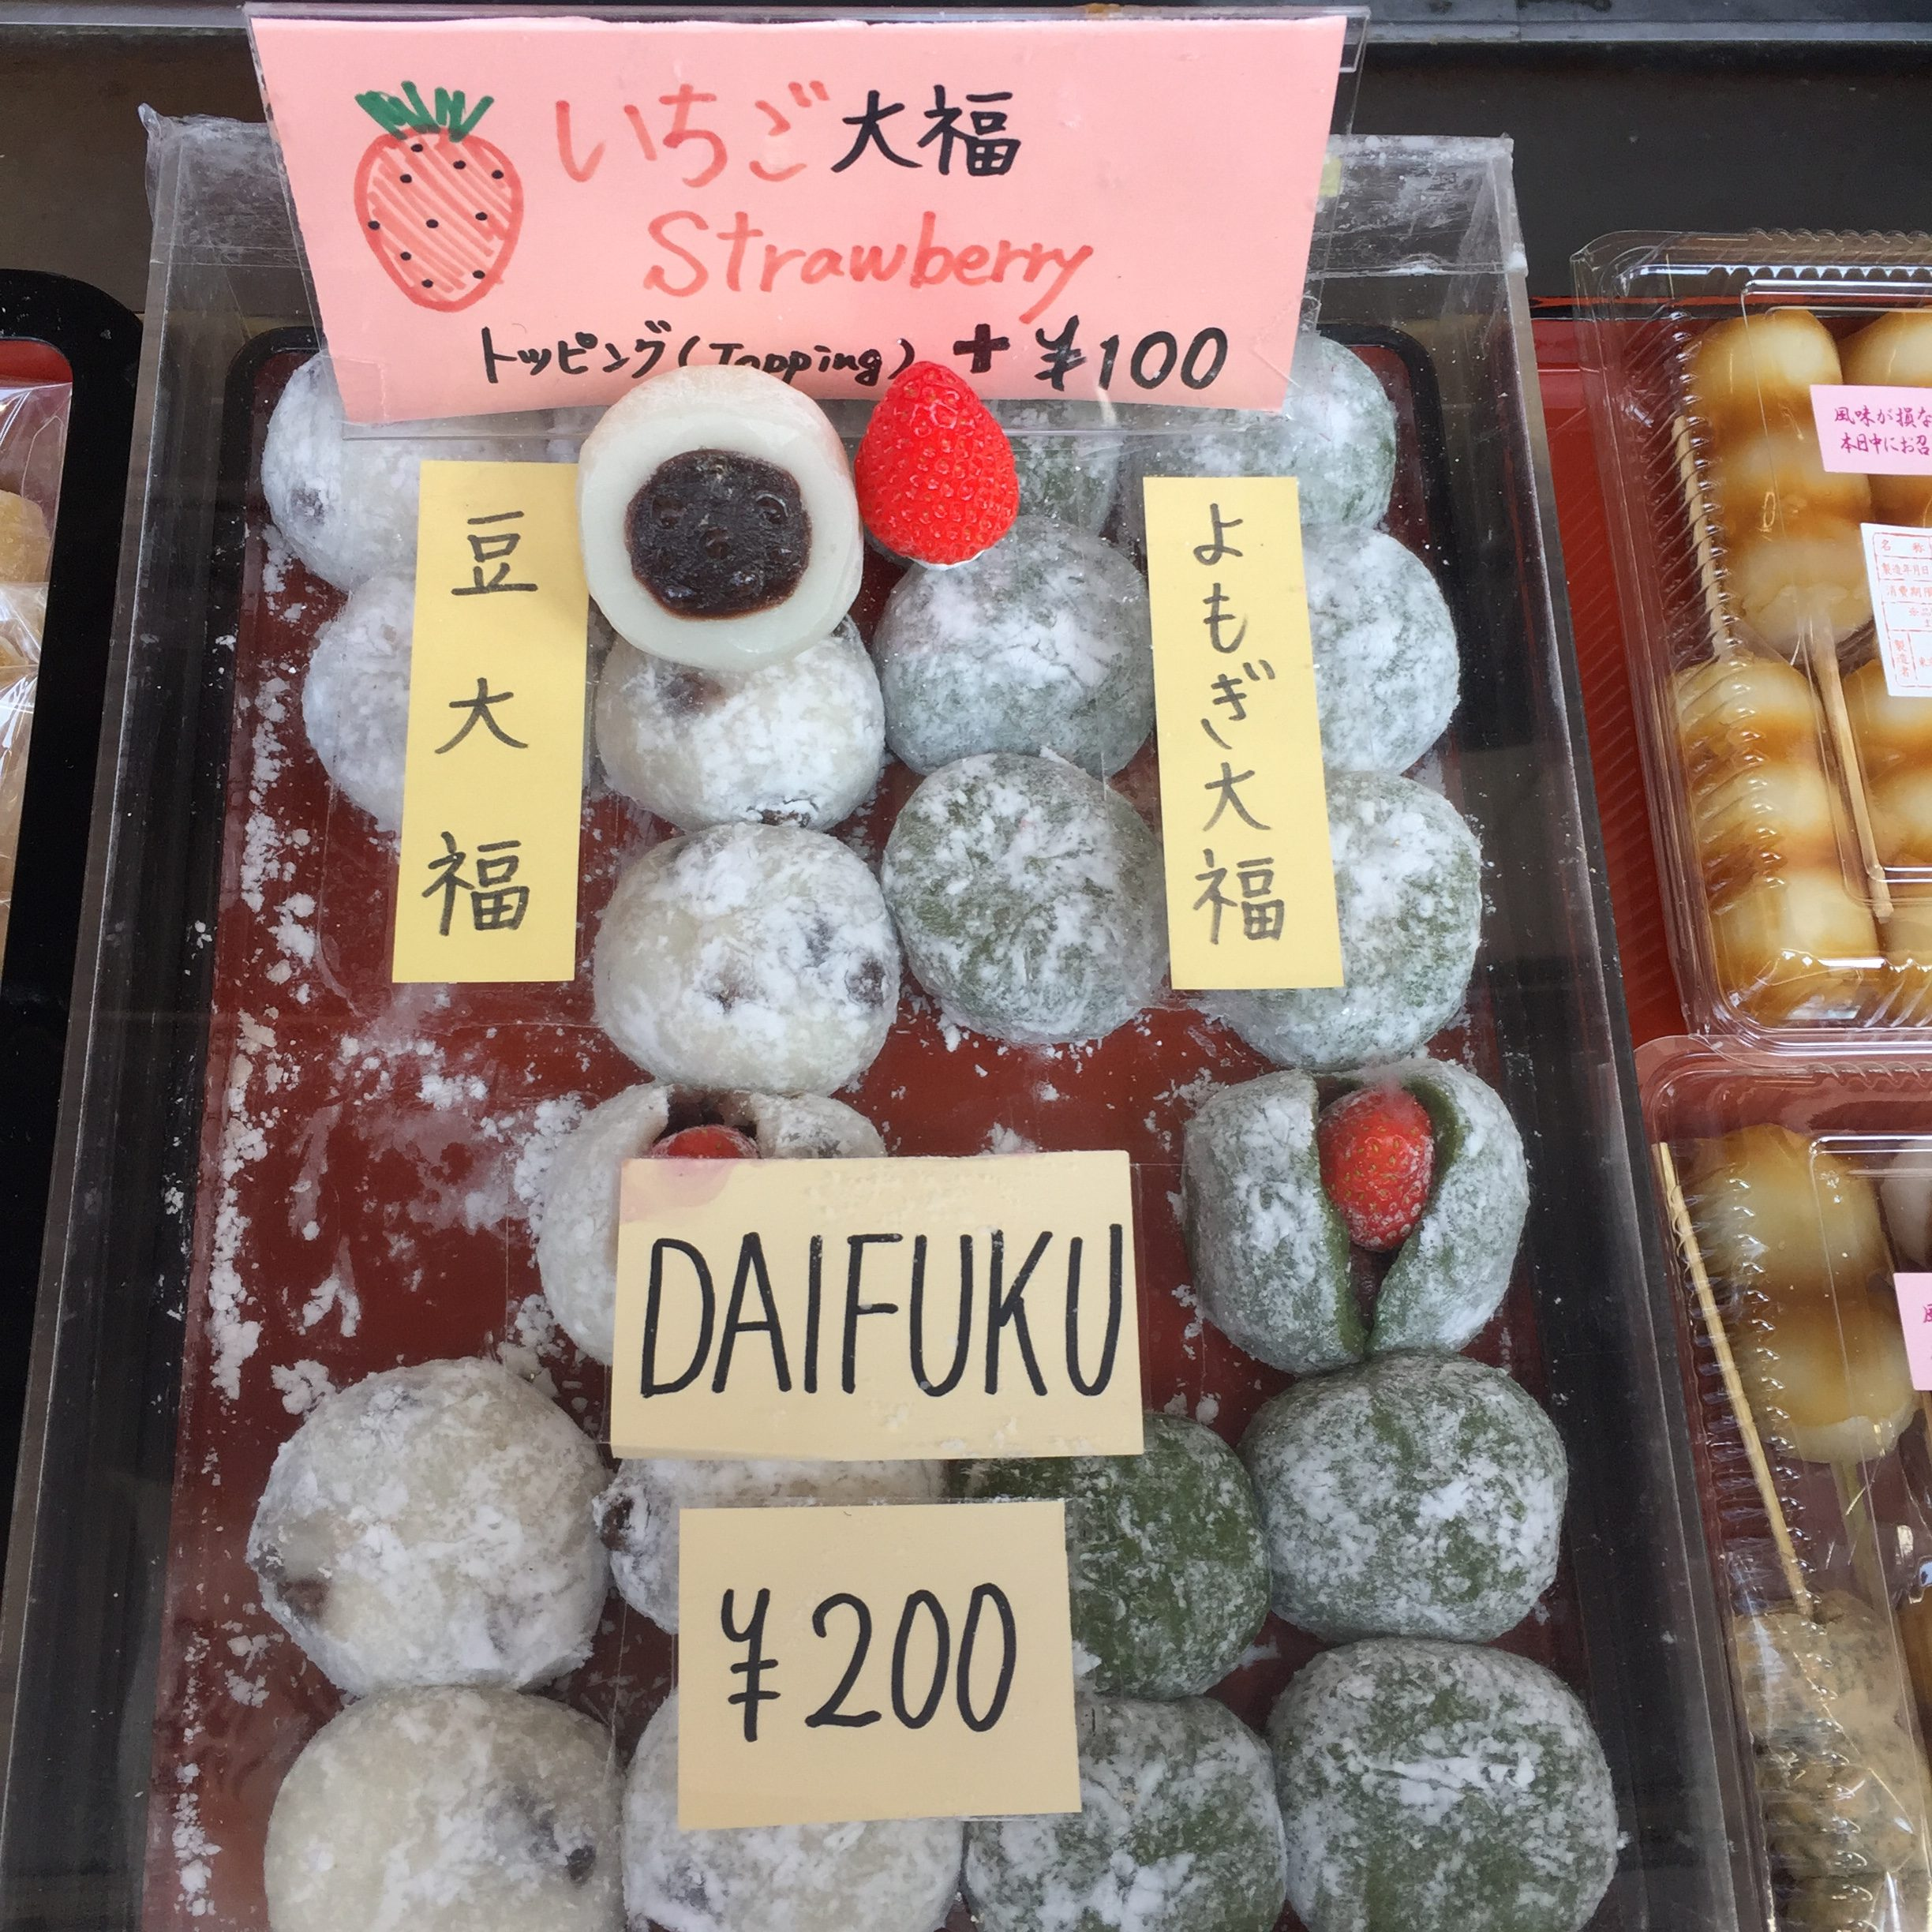 Picture of traditional Japanese candy